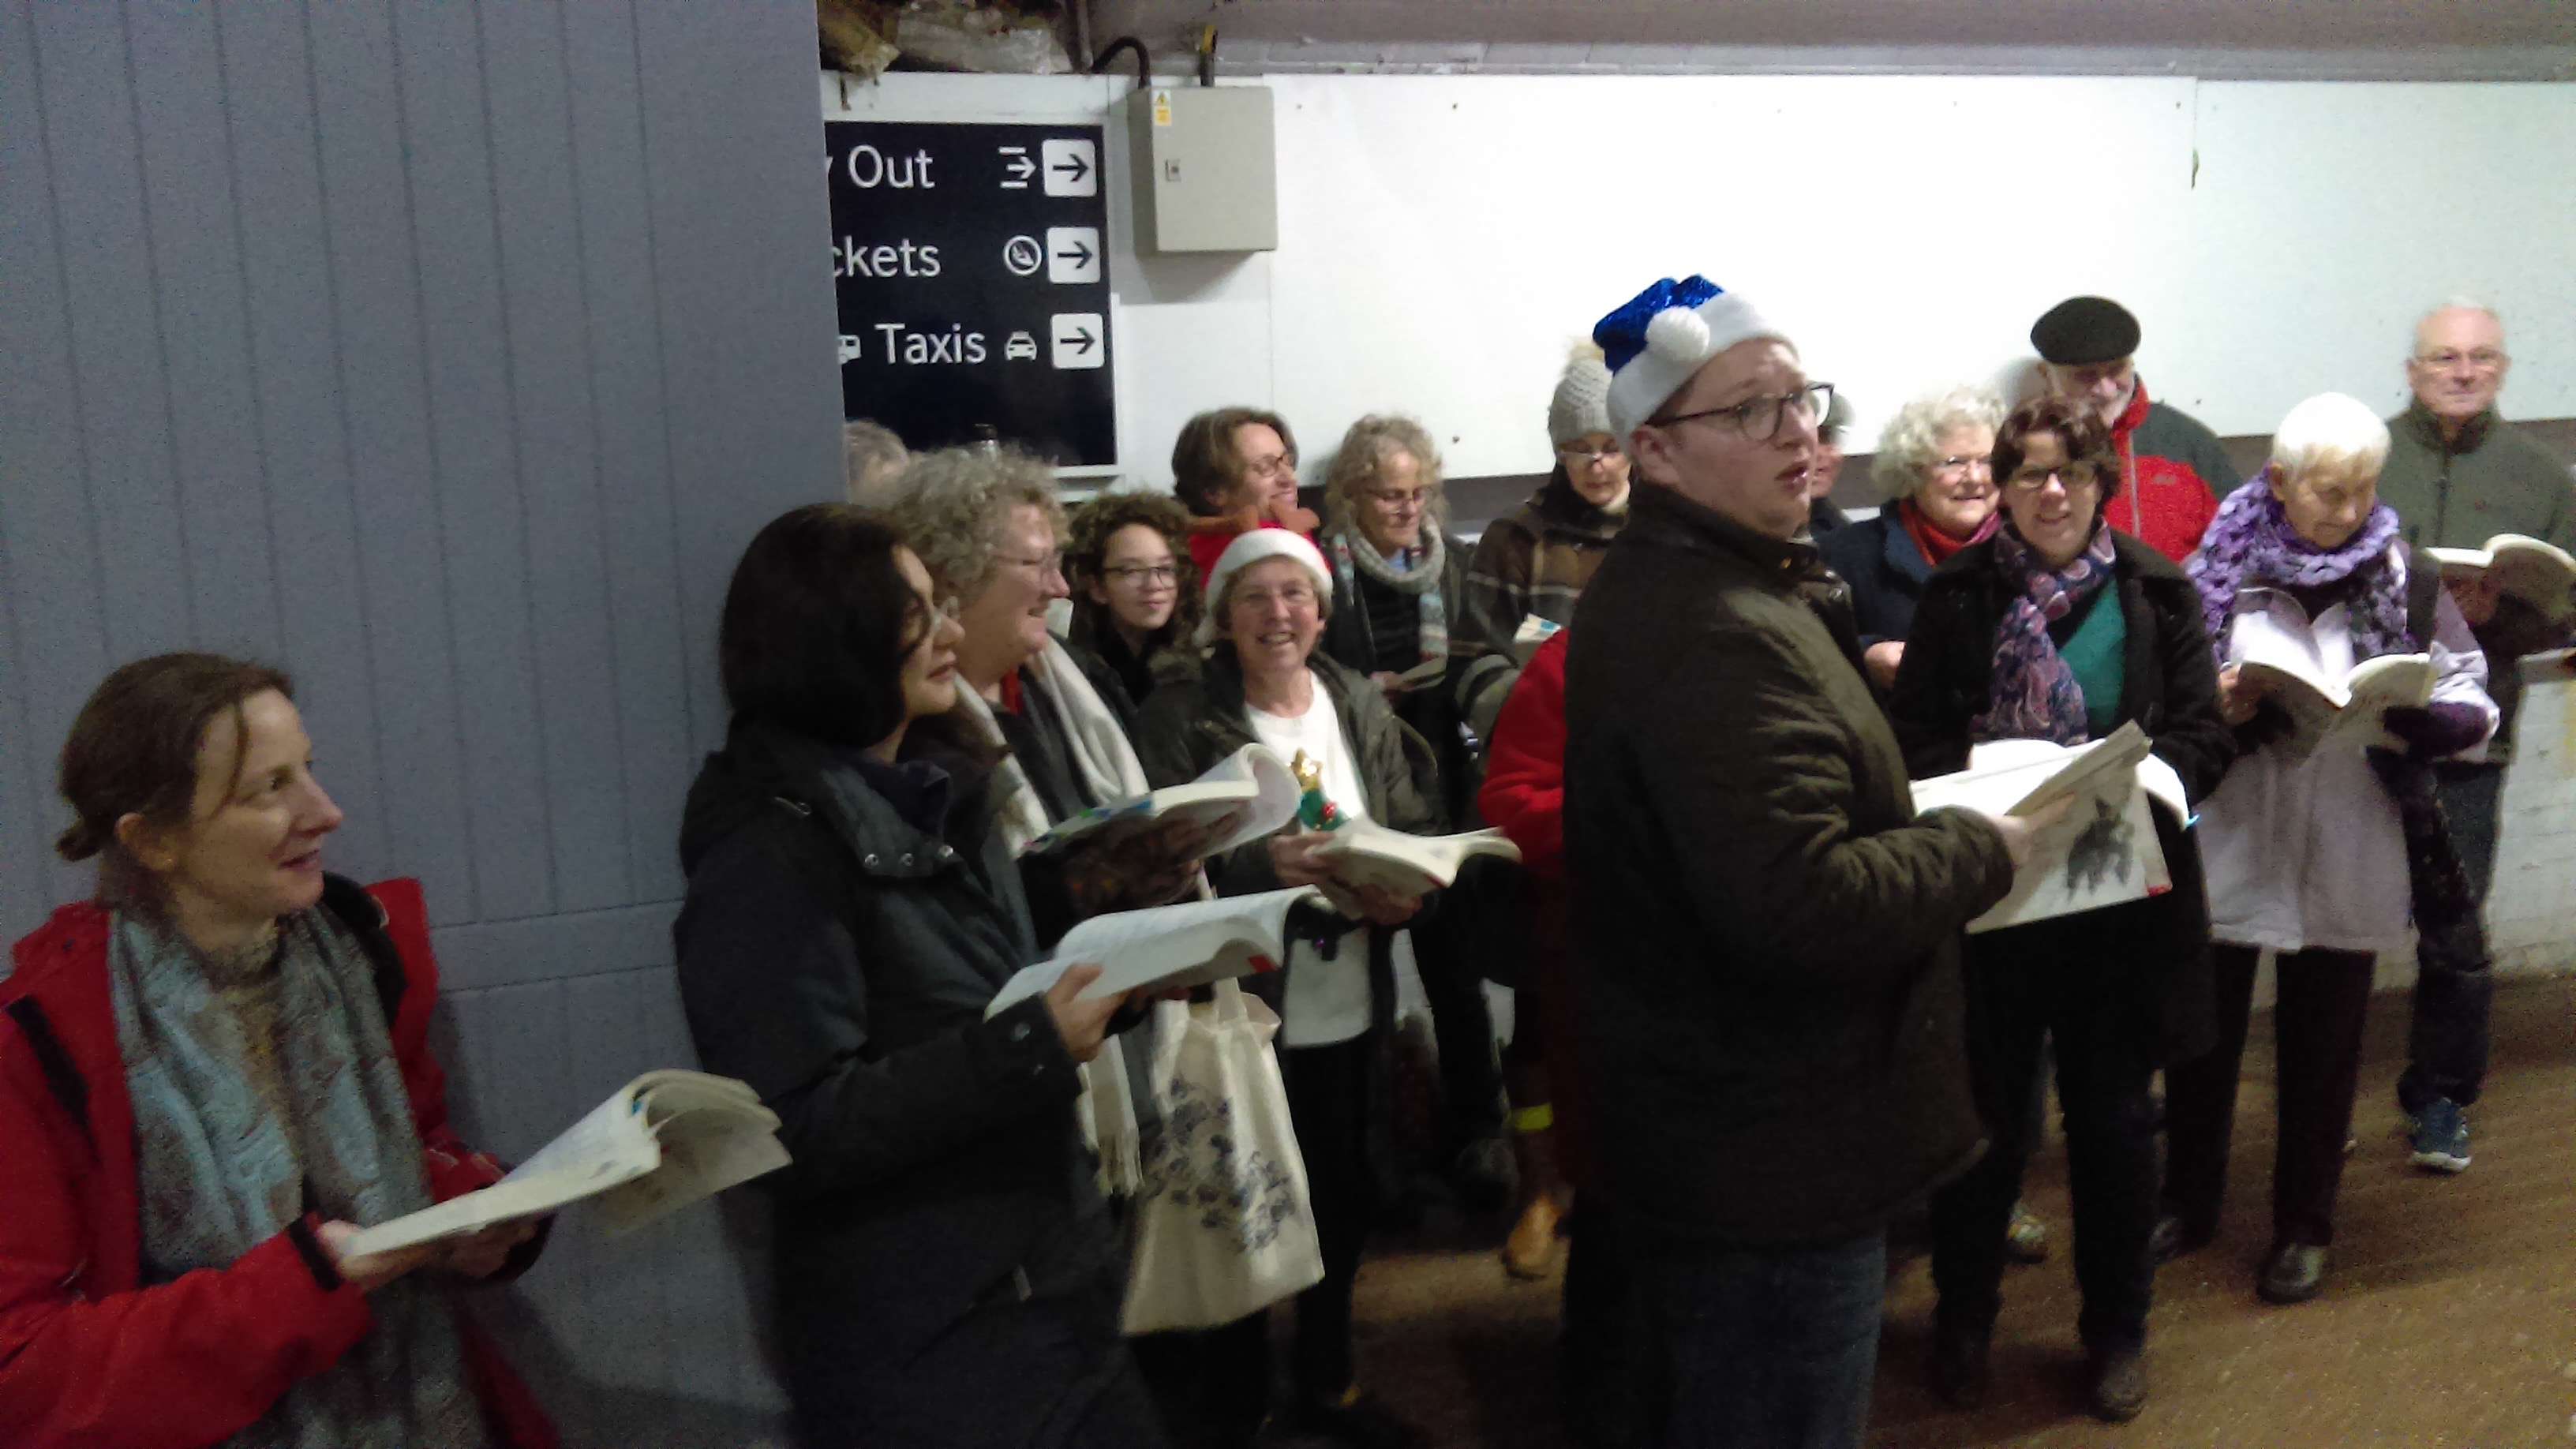 Carols at the Station